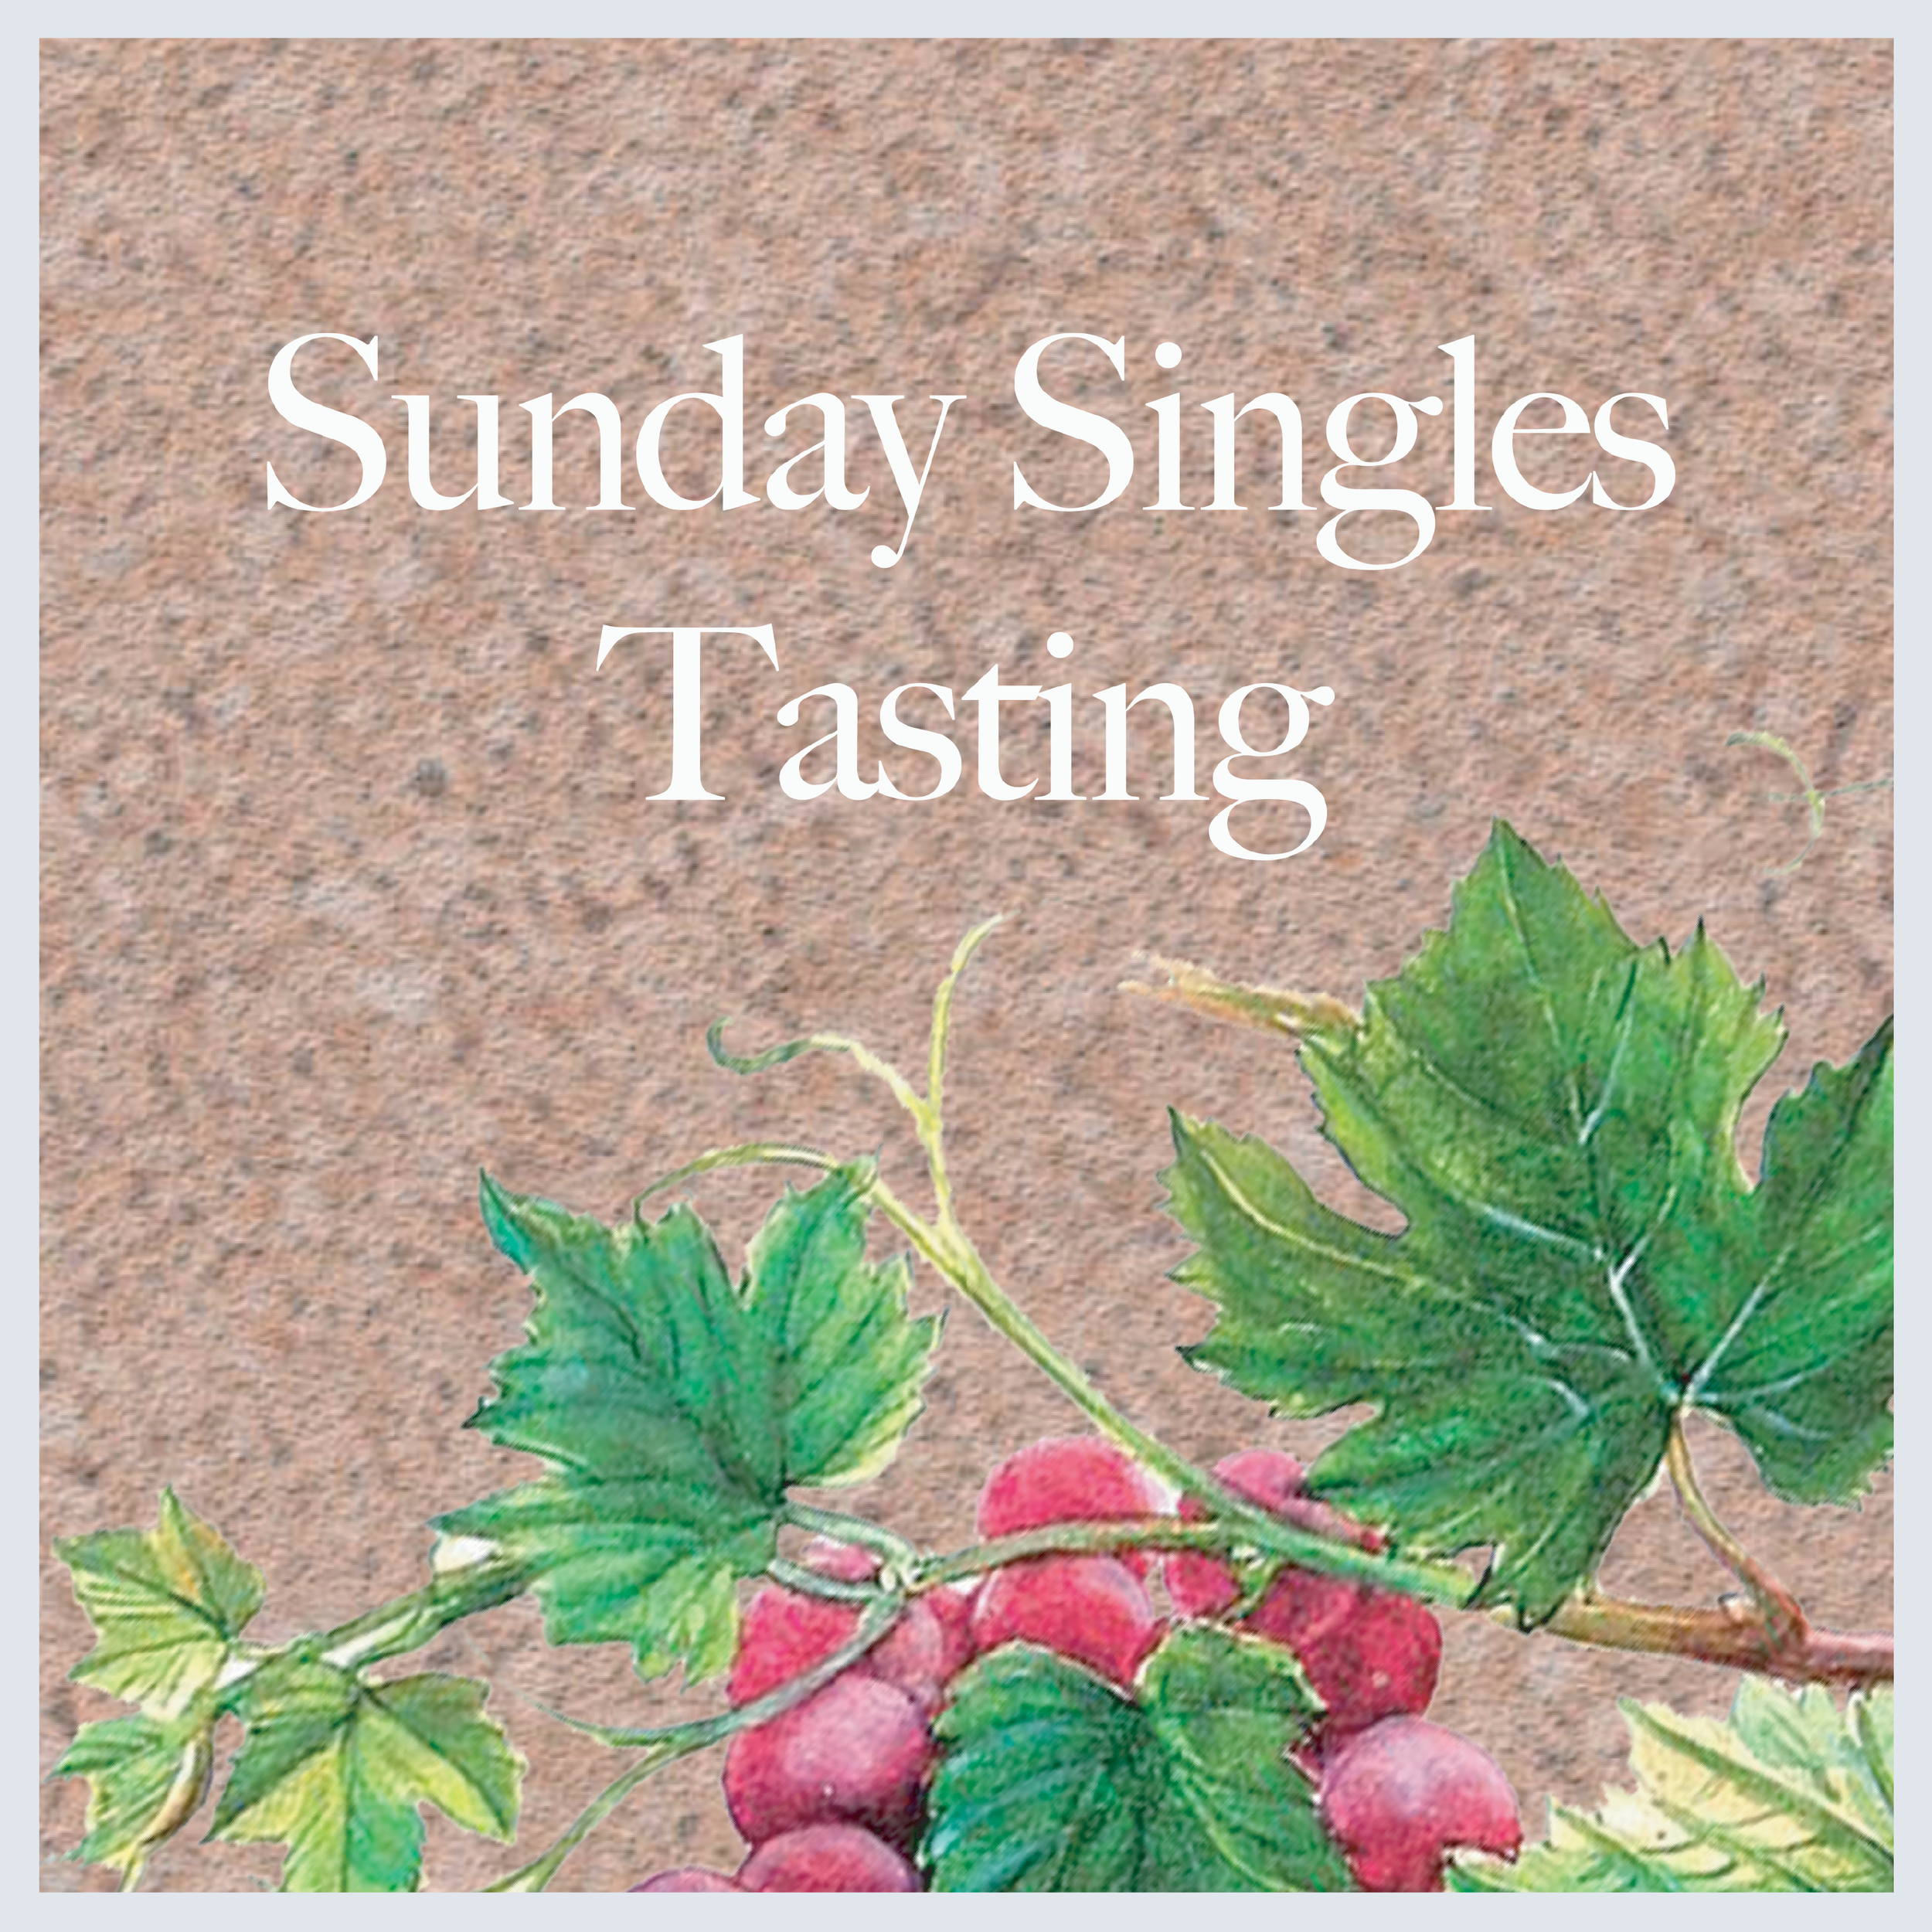 Sunday Singles Tasting Downtown Los Angeles October 20, 2019  3:30 PM - 5:30 PM